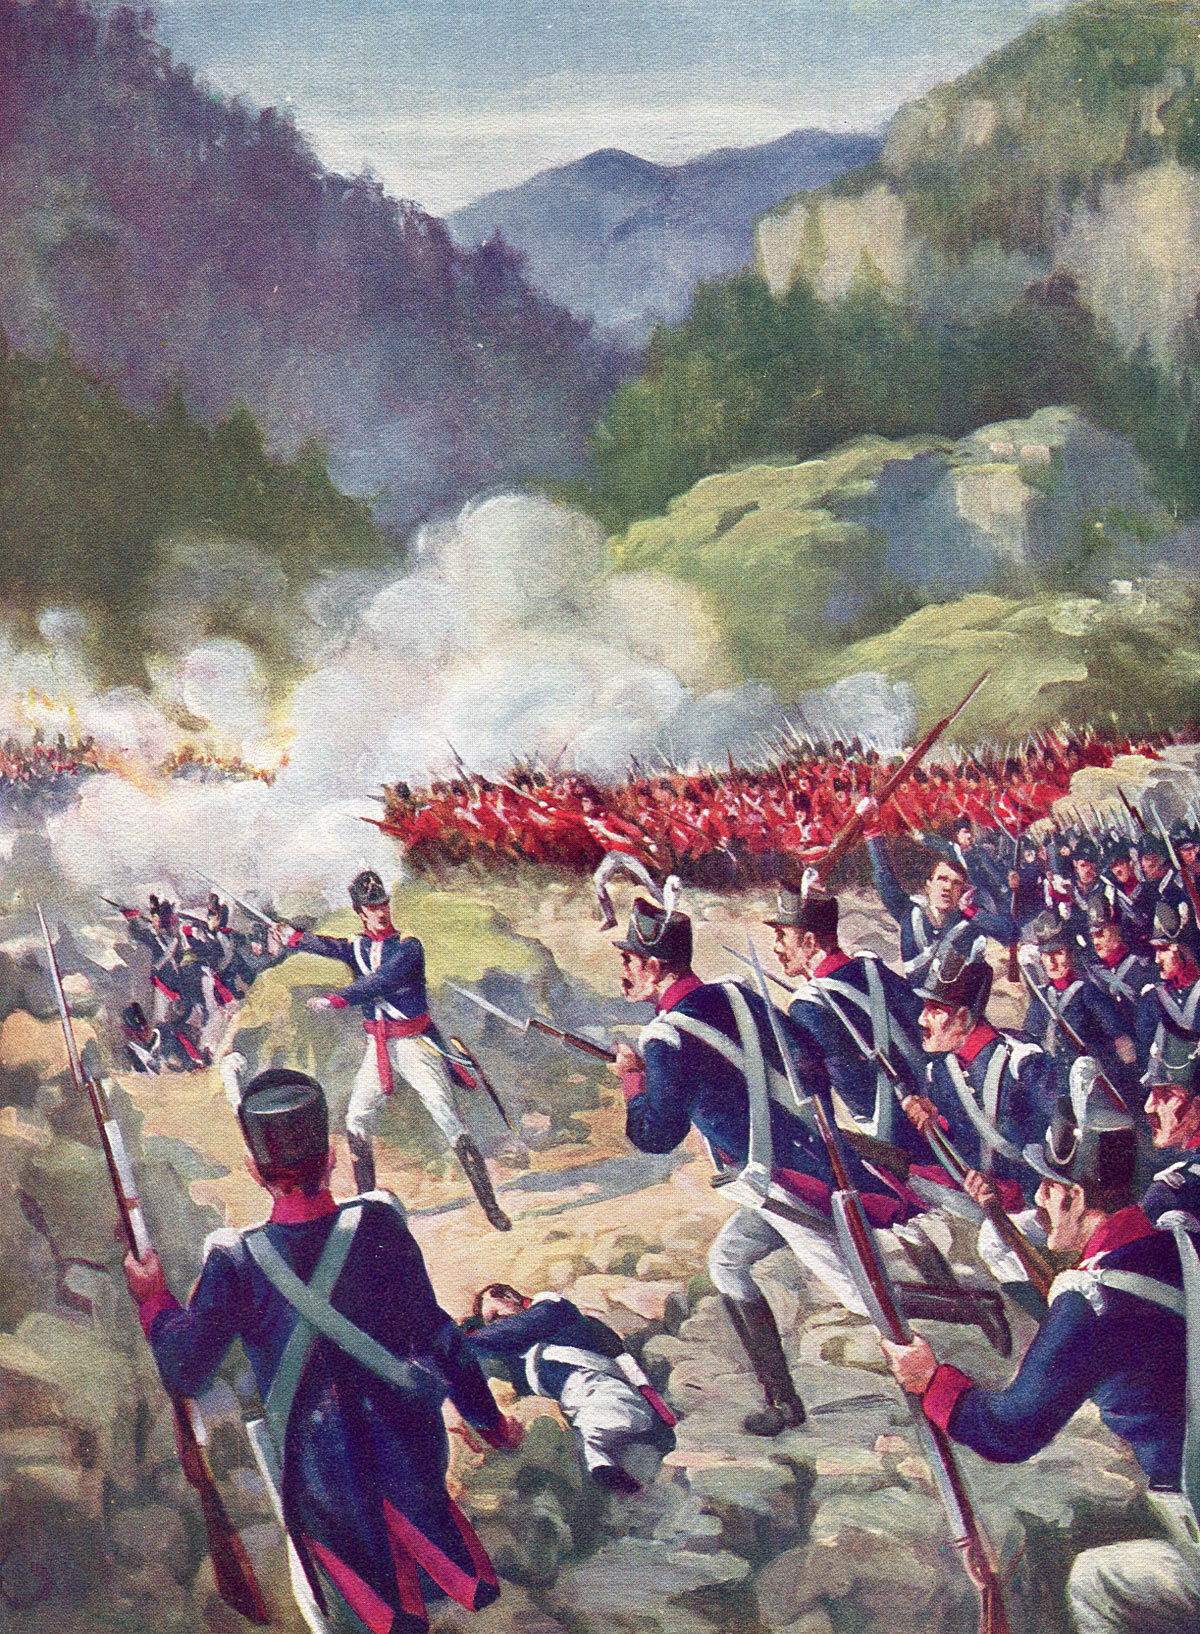 Charge of British and Portuguese infantry at the Battle of Busaco on 27th September 1810 in the Peninsular War